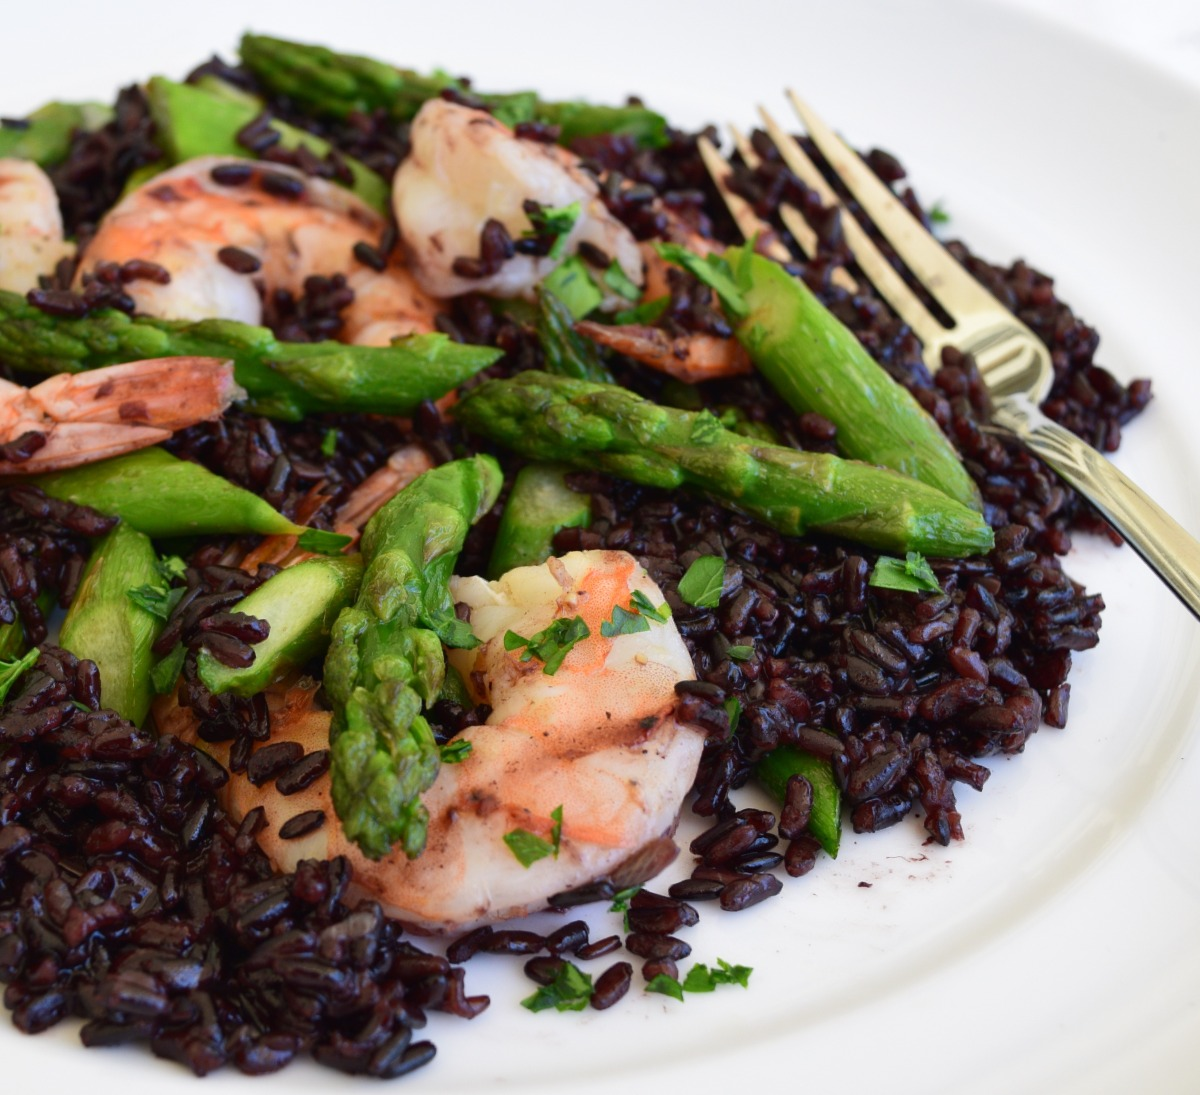 Black Risotto with Asparagus and Shrimps Recipe